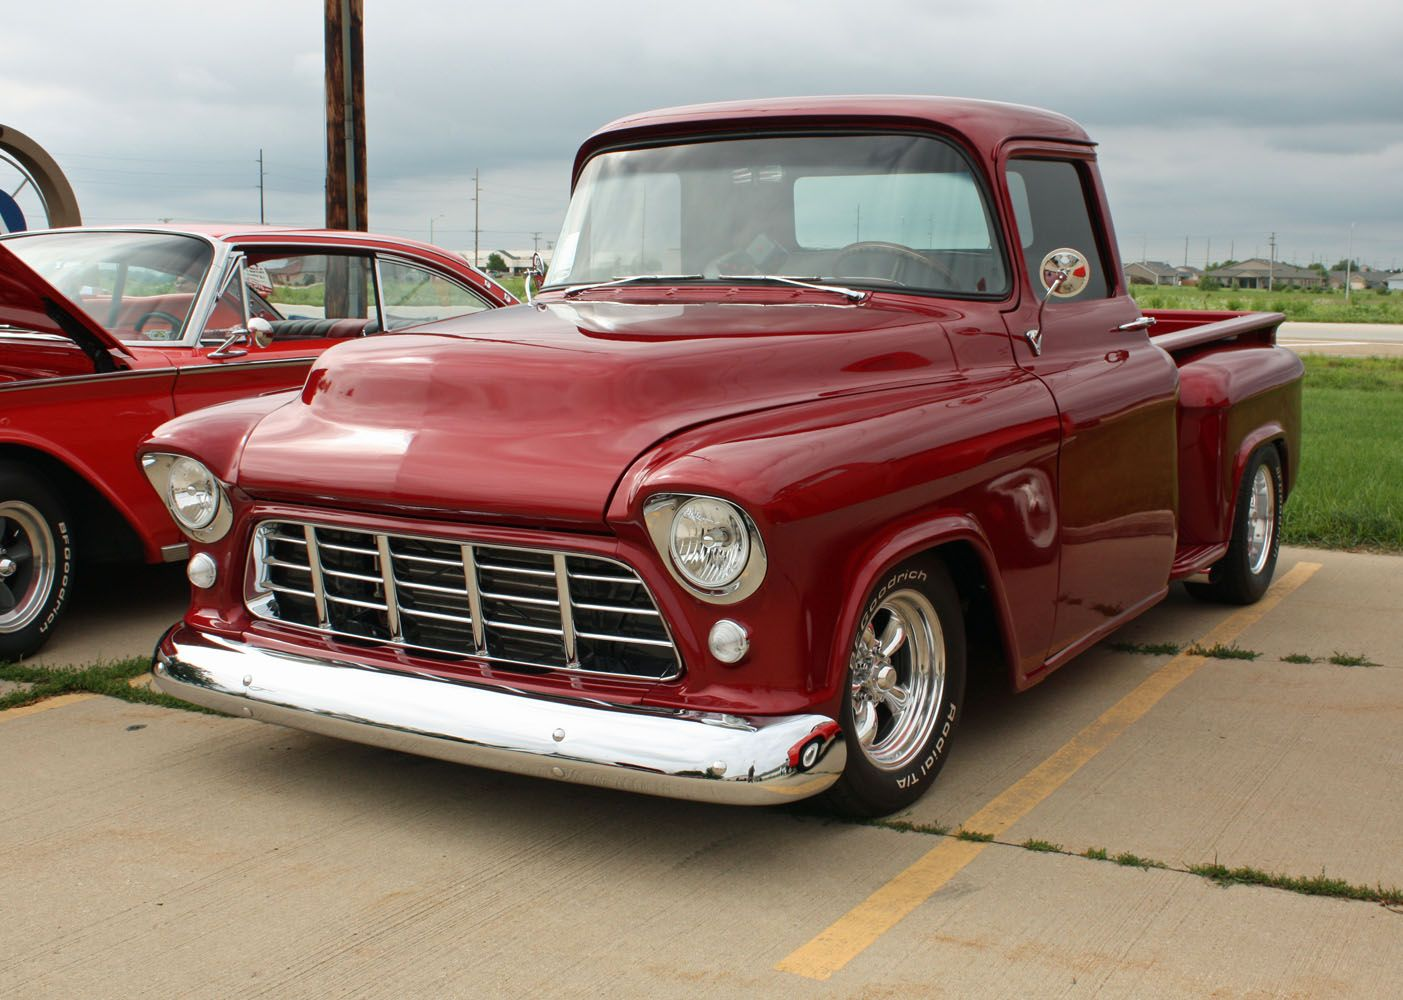 Truck 56 chevy truck : 1955 Chevy Pickup | 1955 Second Series Chevy/GMC Pickup Truck ...